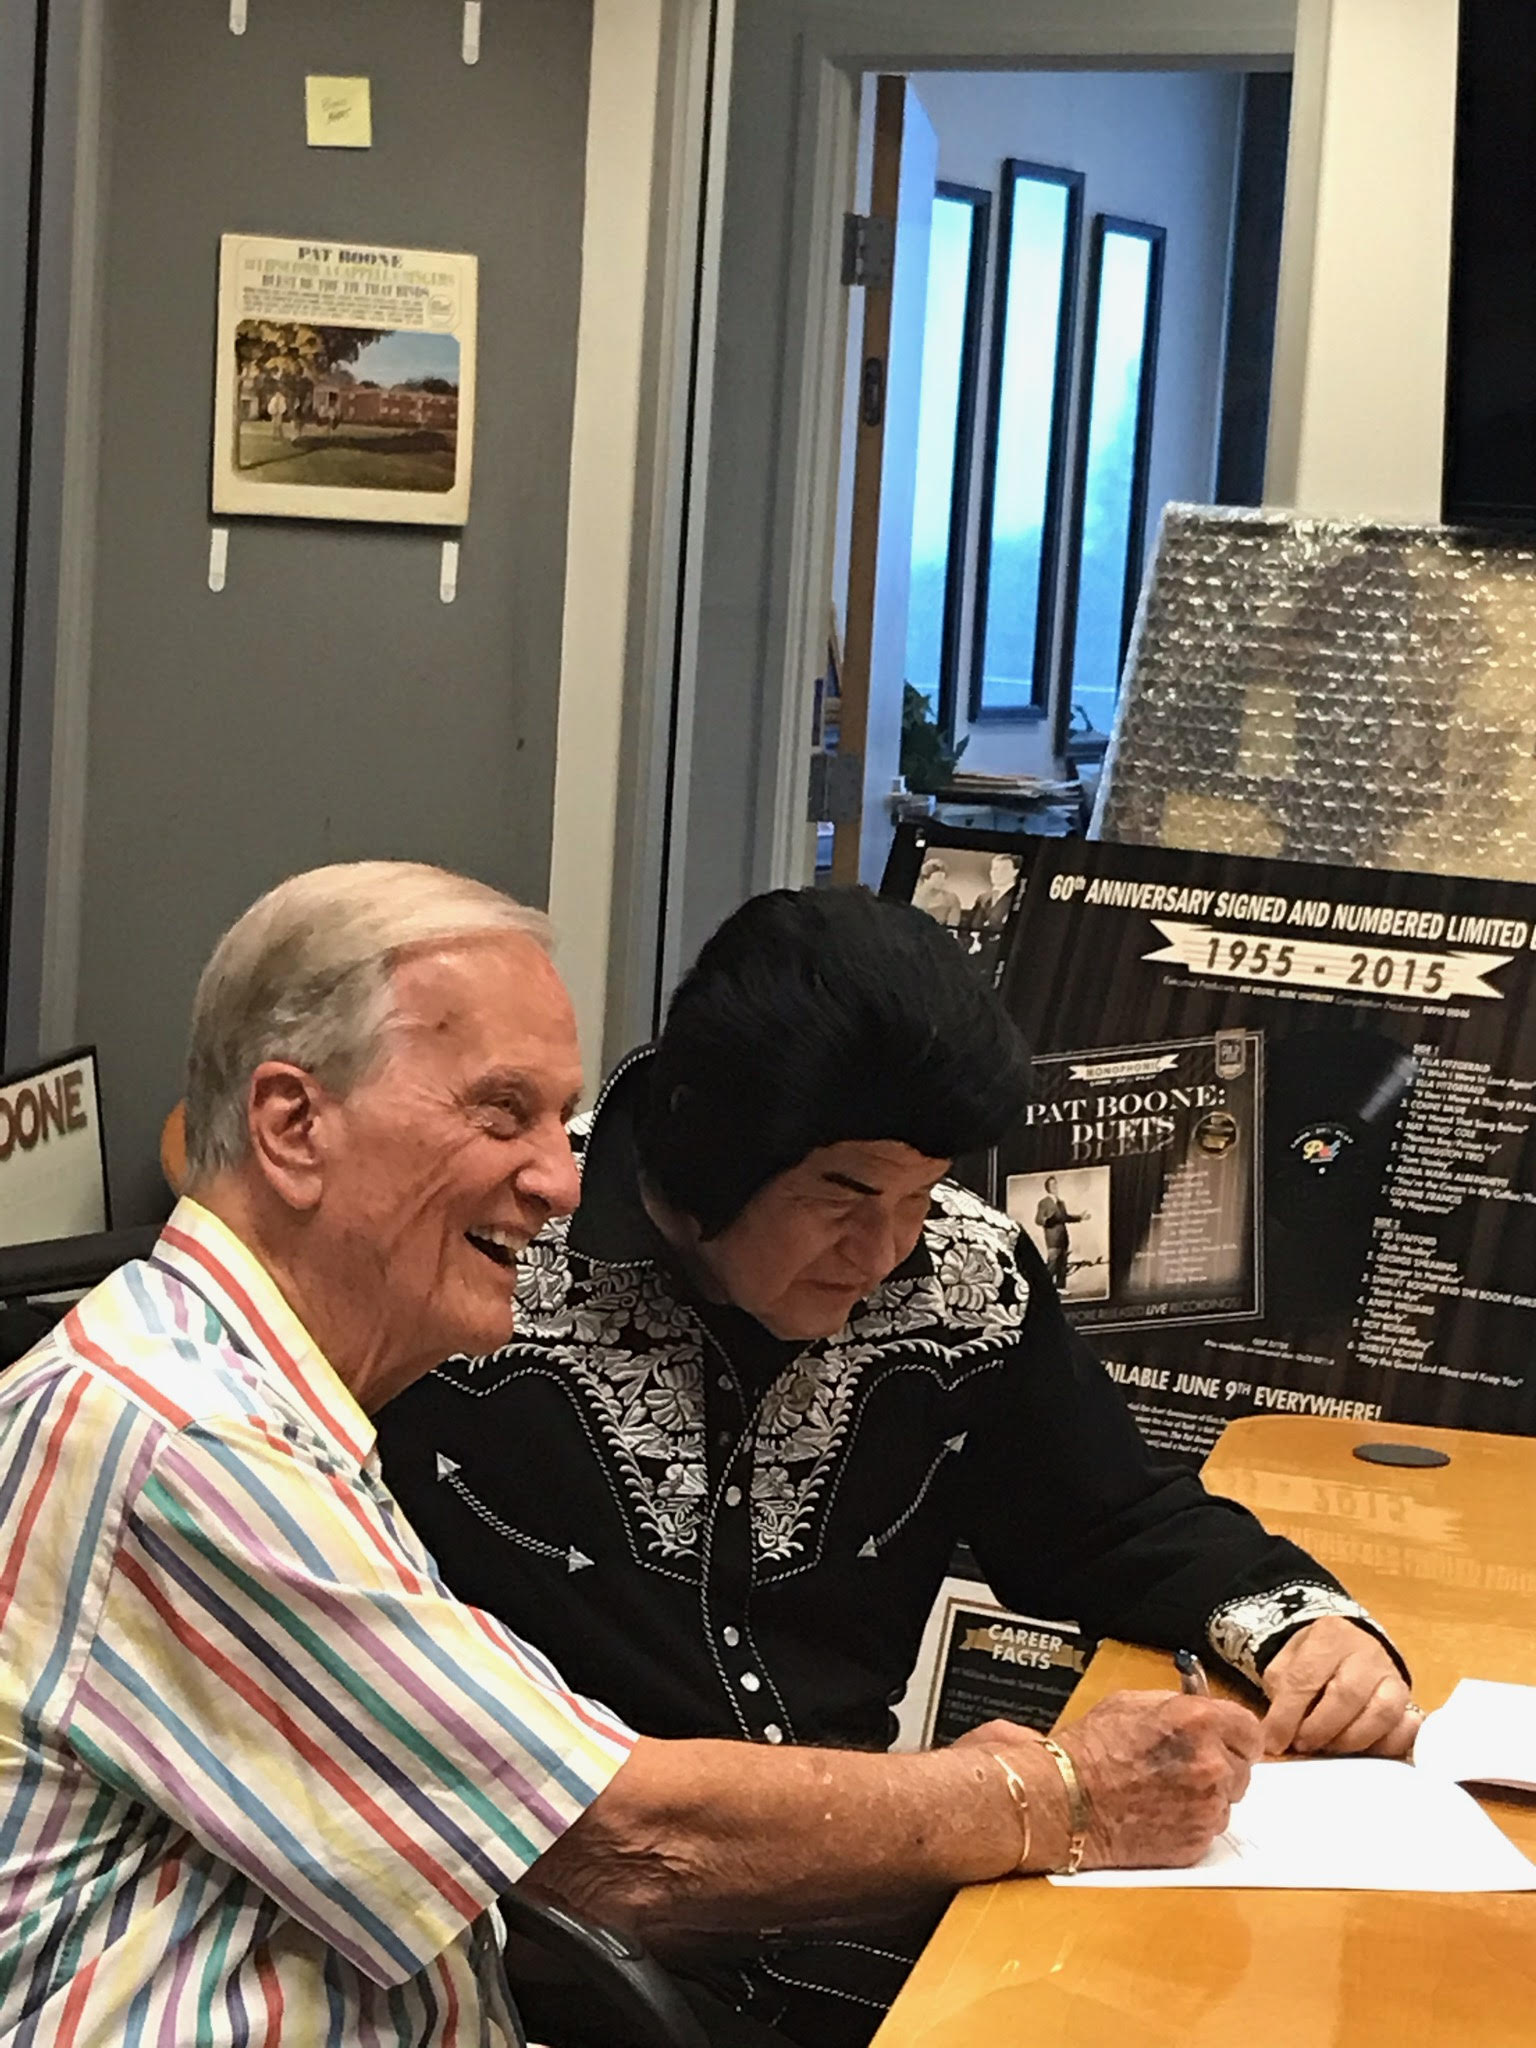 At his memory-filled corporate headquarters near Hollywood, music icon Pat Boone, a teen idol alongside Elvis Presley in the 1950s, welcomes a fellow teen idol and longtime friend, Jimmy Angel.